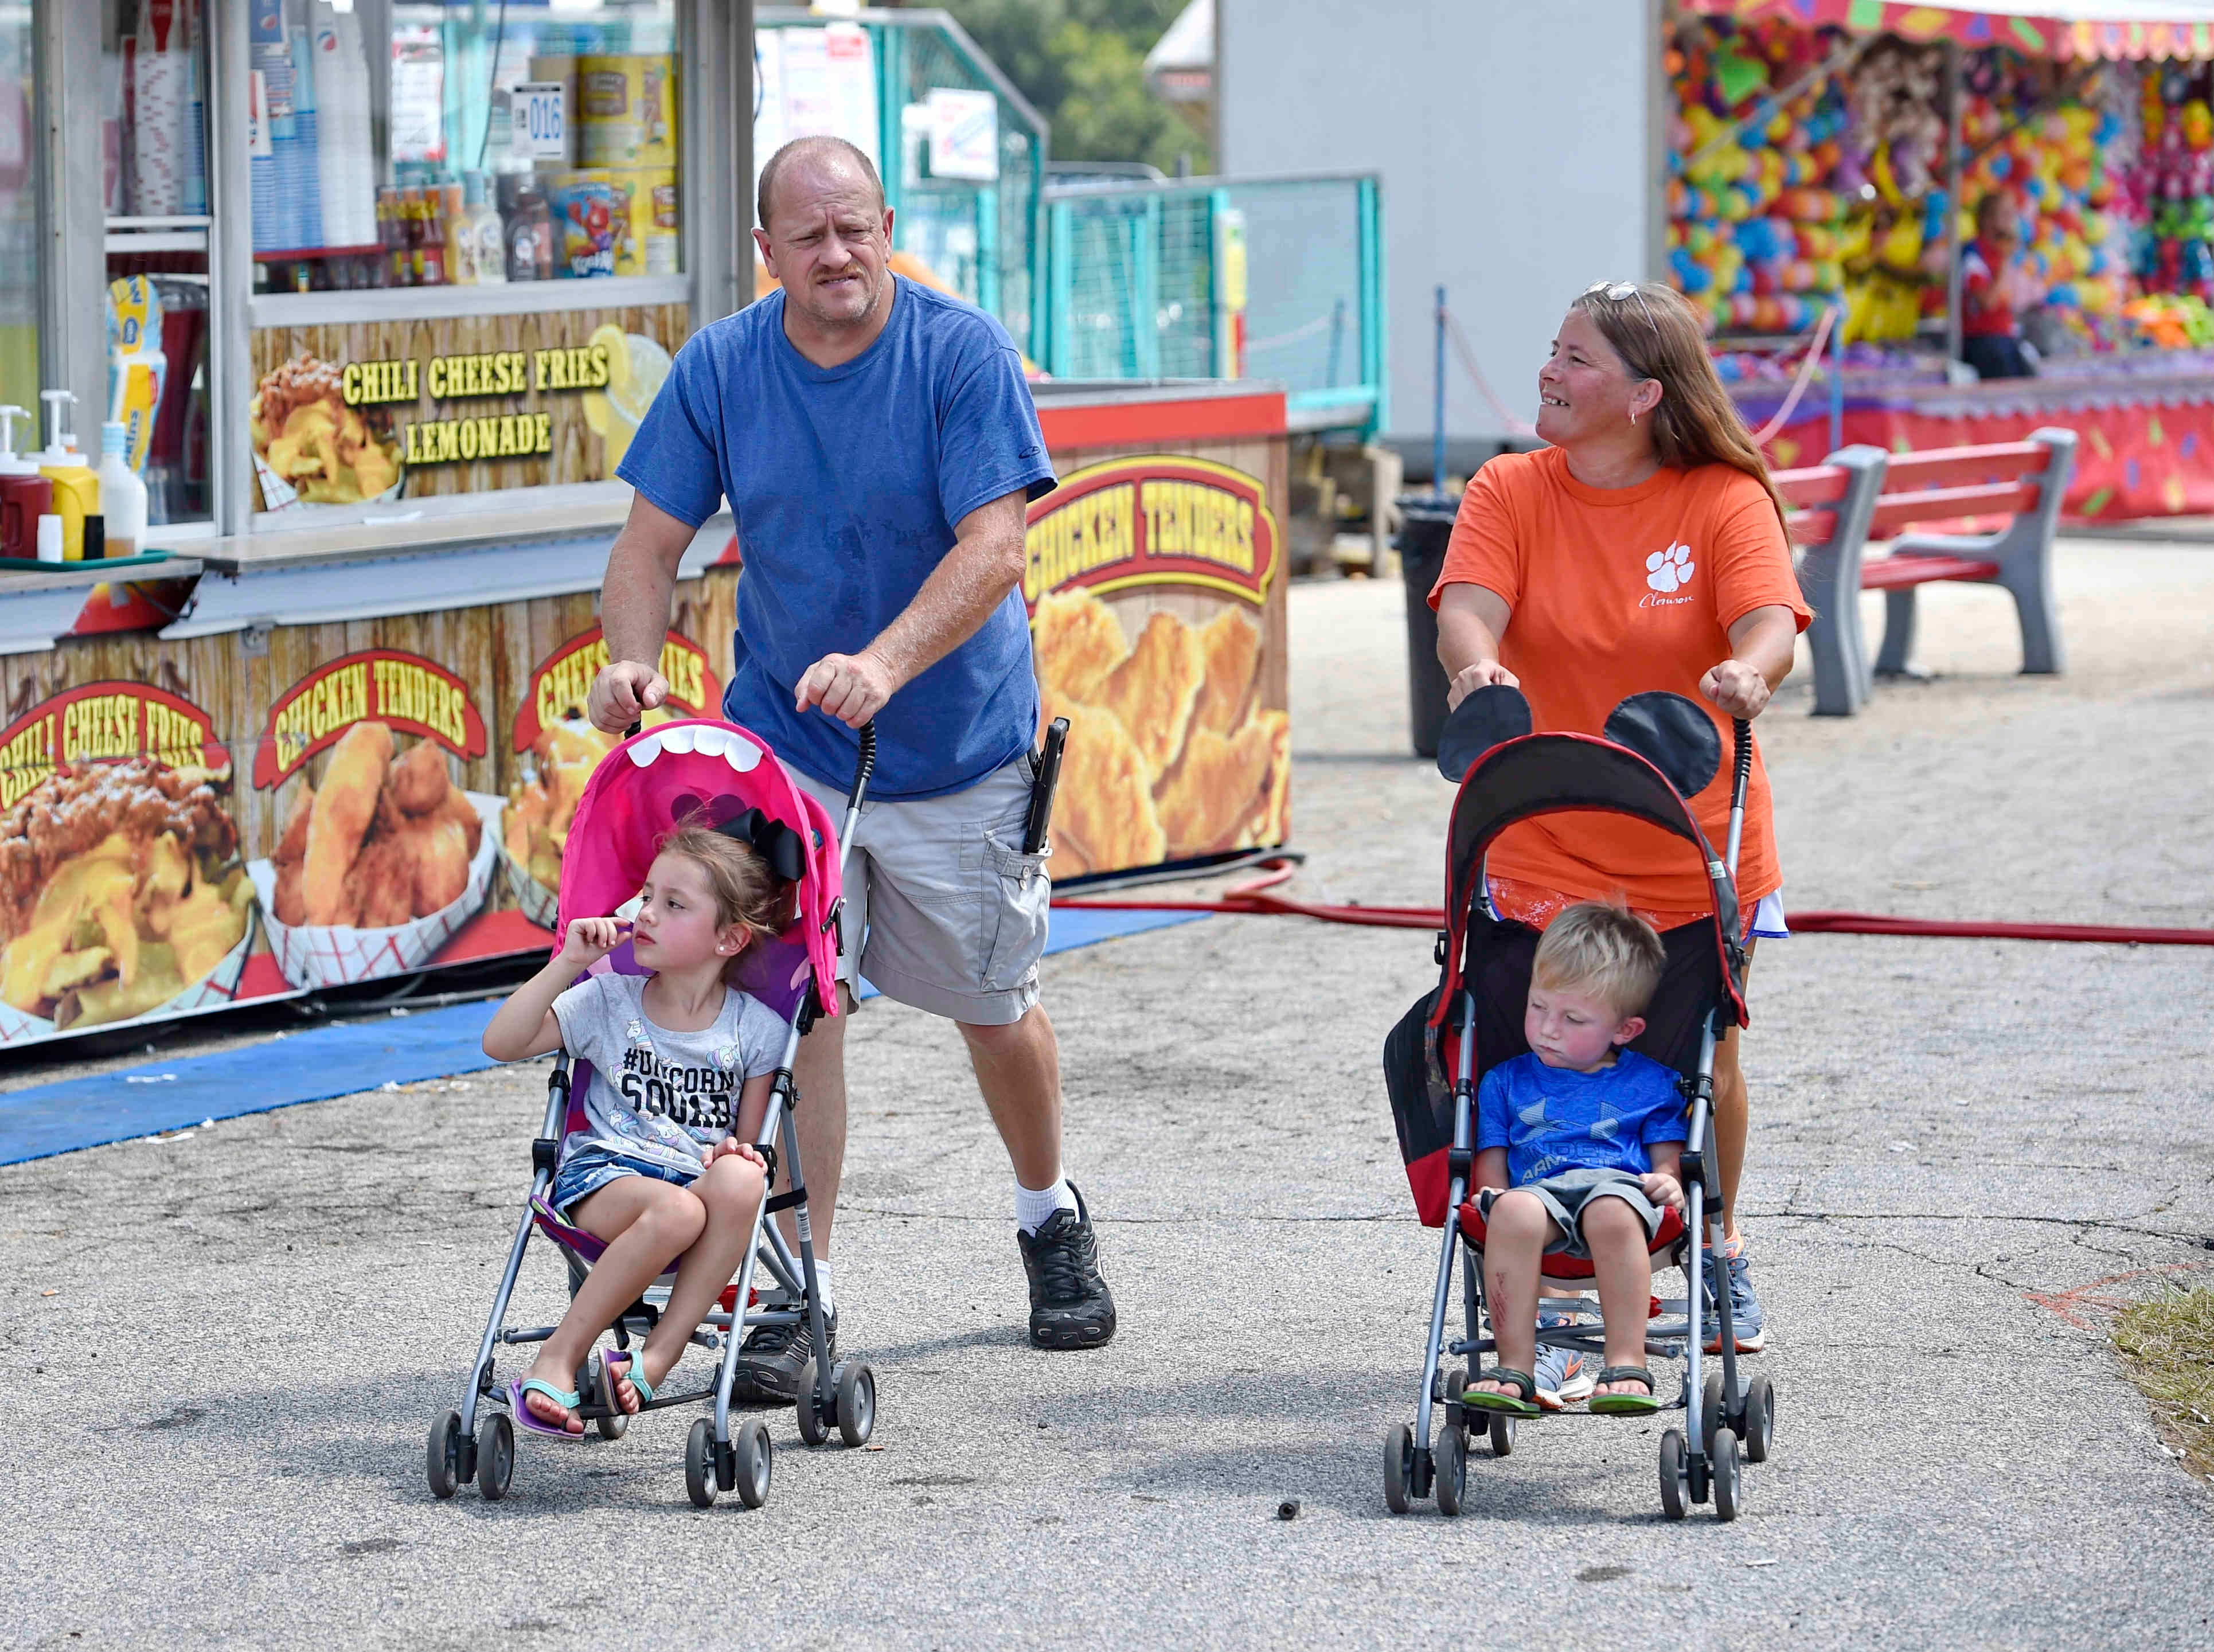 The annual Upper South Carolina State Fair is back in town through Sept. 9 at the Greenville-Pickens Speedway.